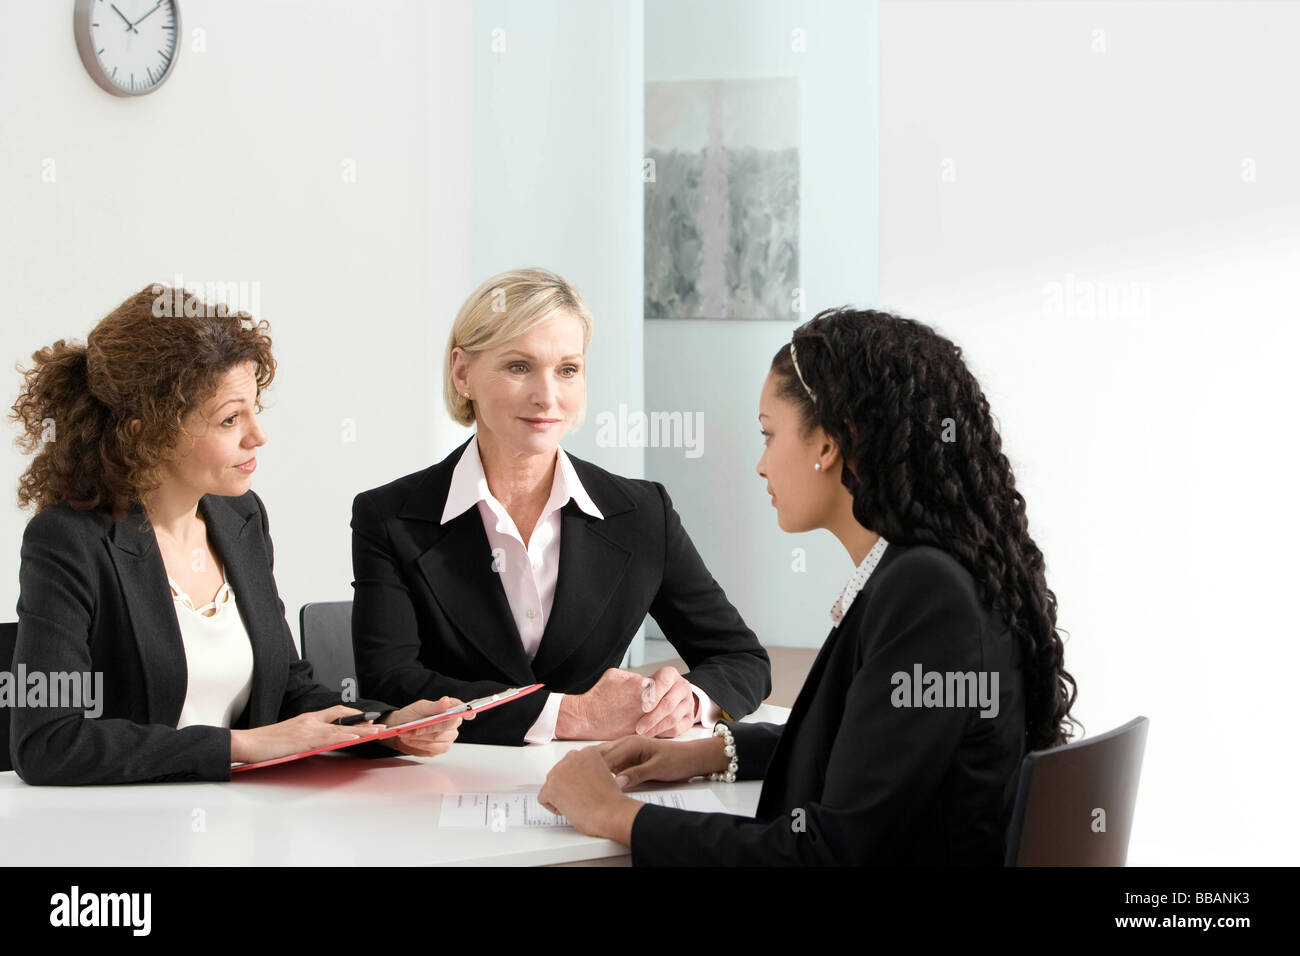 two-business-women-conduct-an-interview-